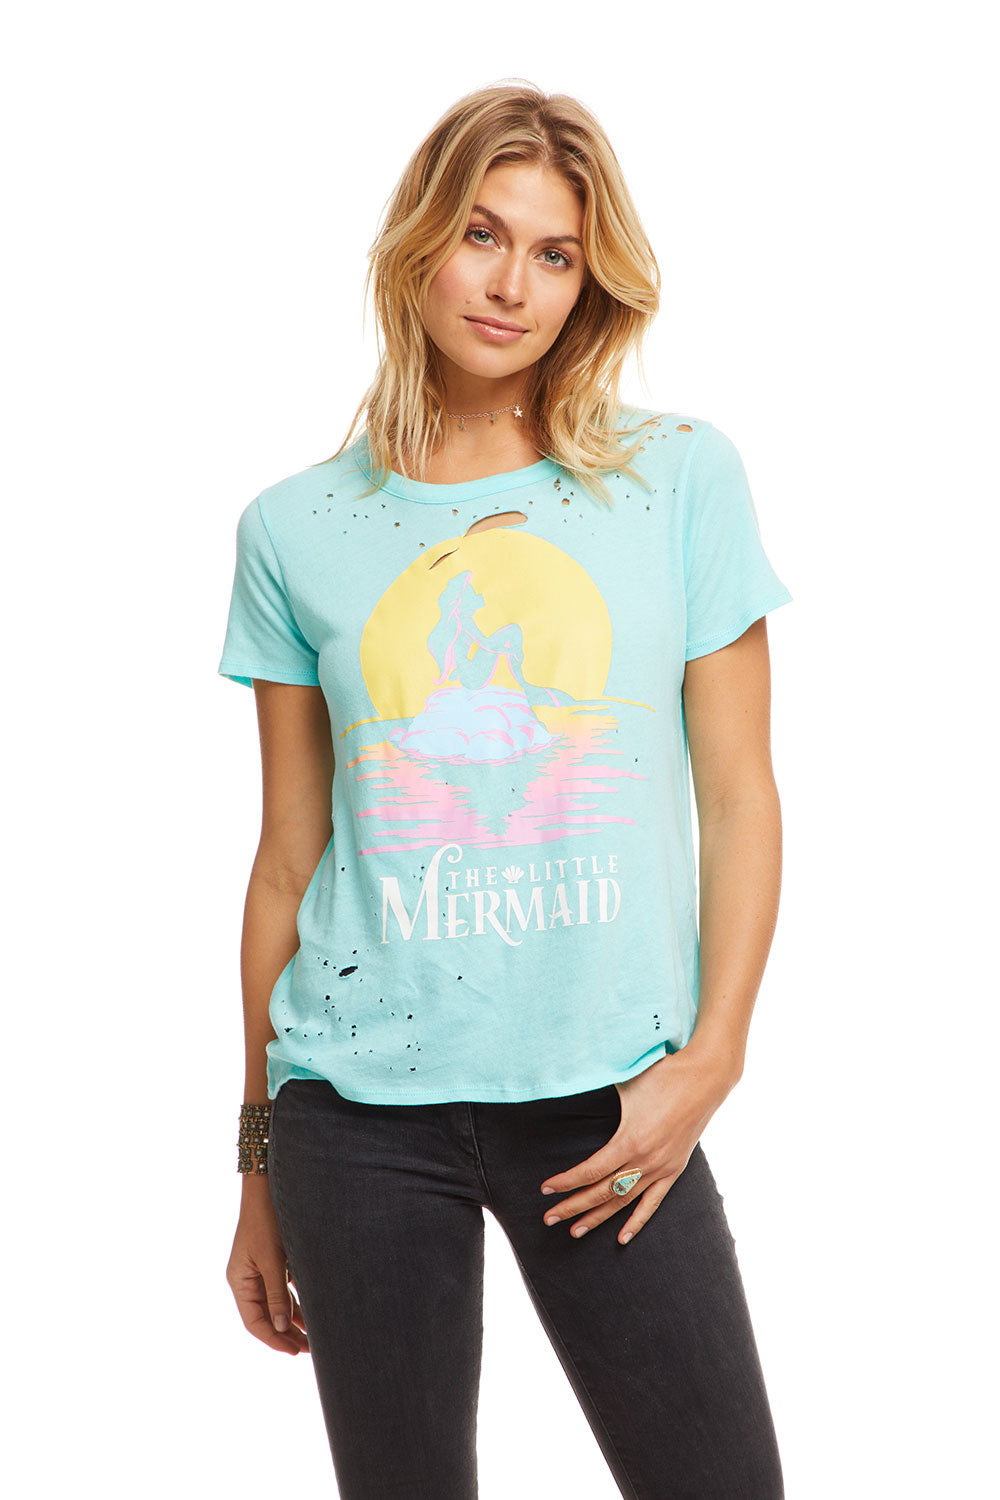 Disney's The Little Mermaid - Little Mermaid Sunset, WOMENS, chaserbrand.com,chaser clothing,chaser apparel,chaser los angeles